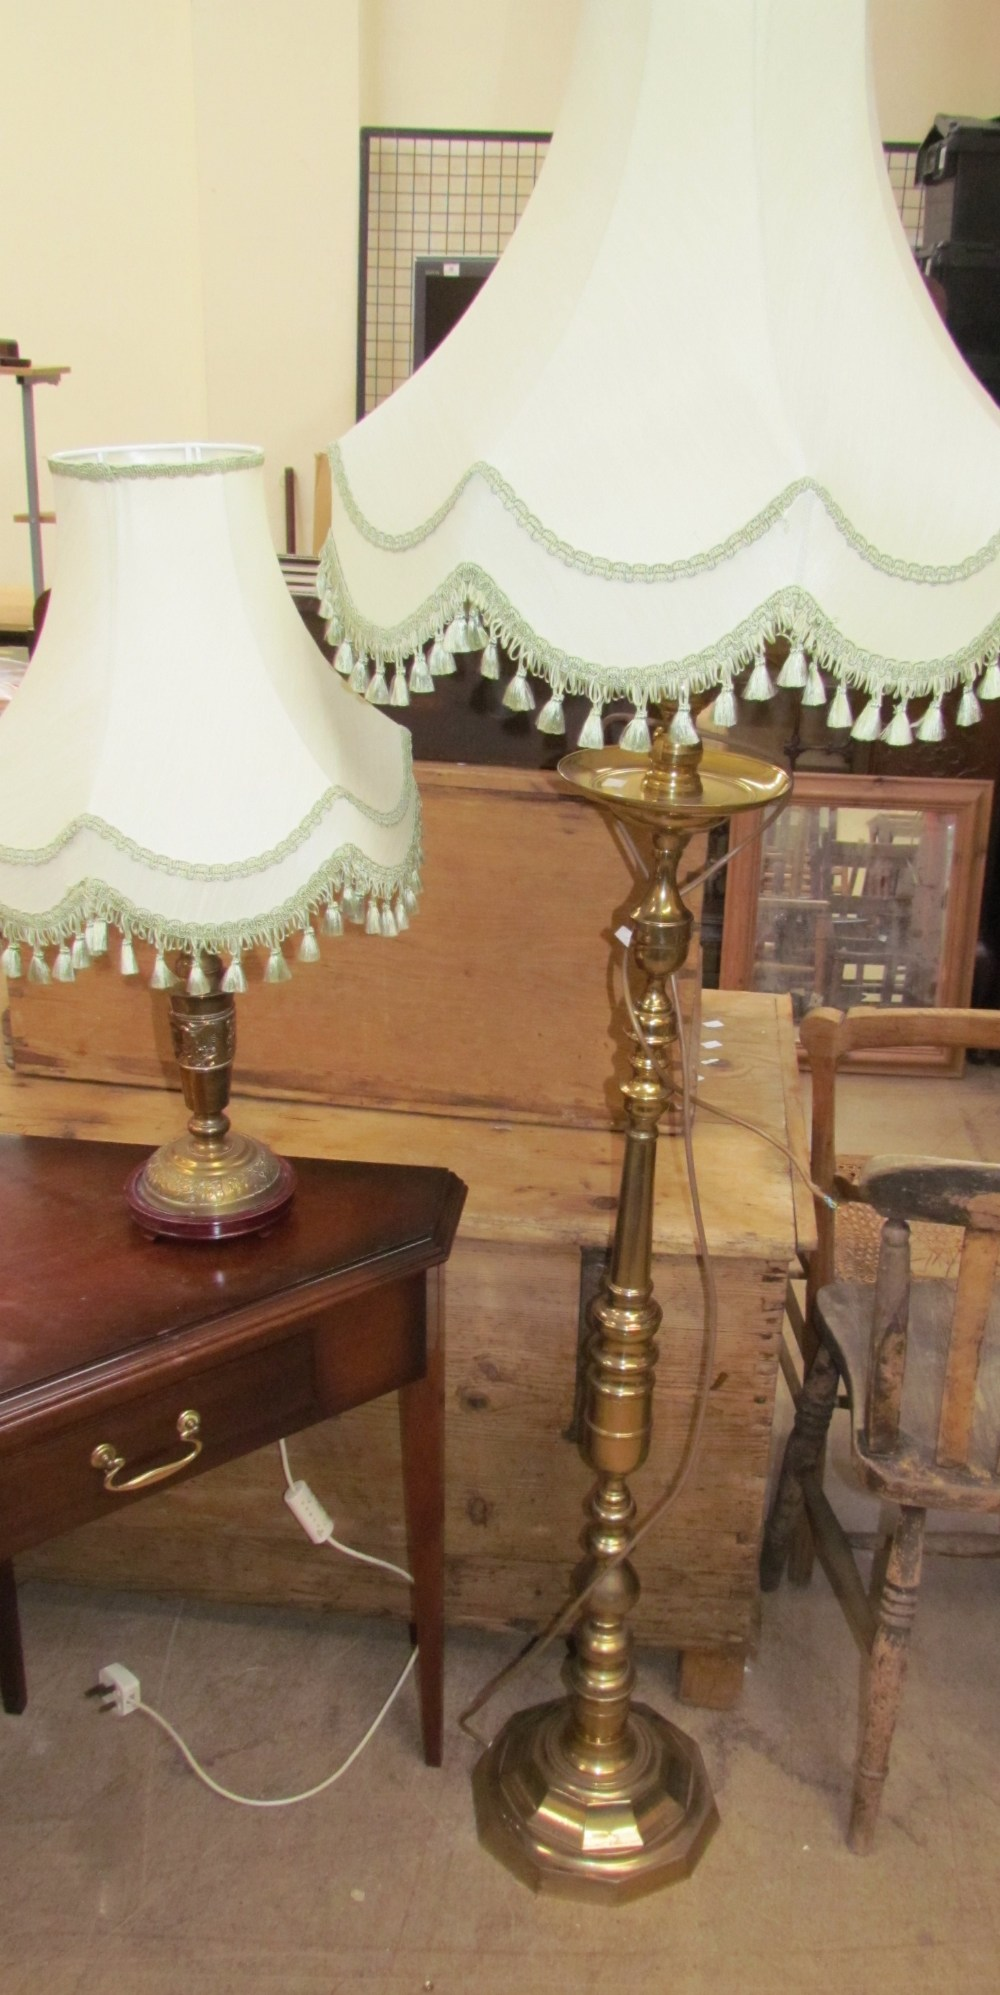 Lot 55 - A brass standard lamp together with another brass standard lamp